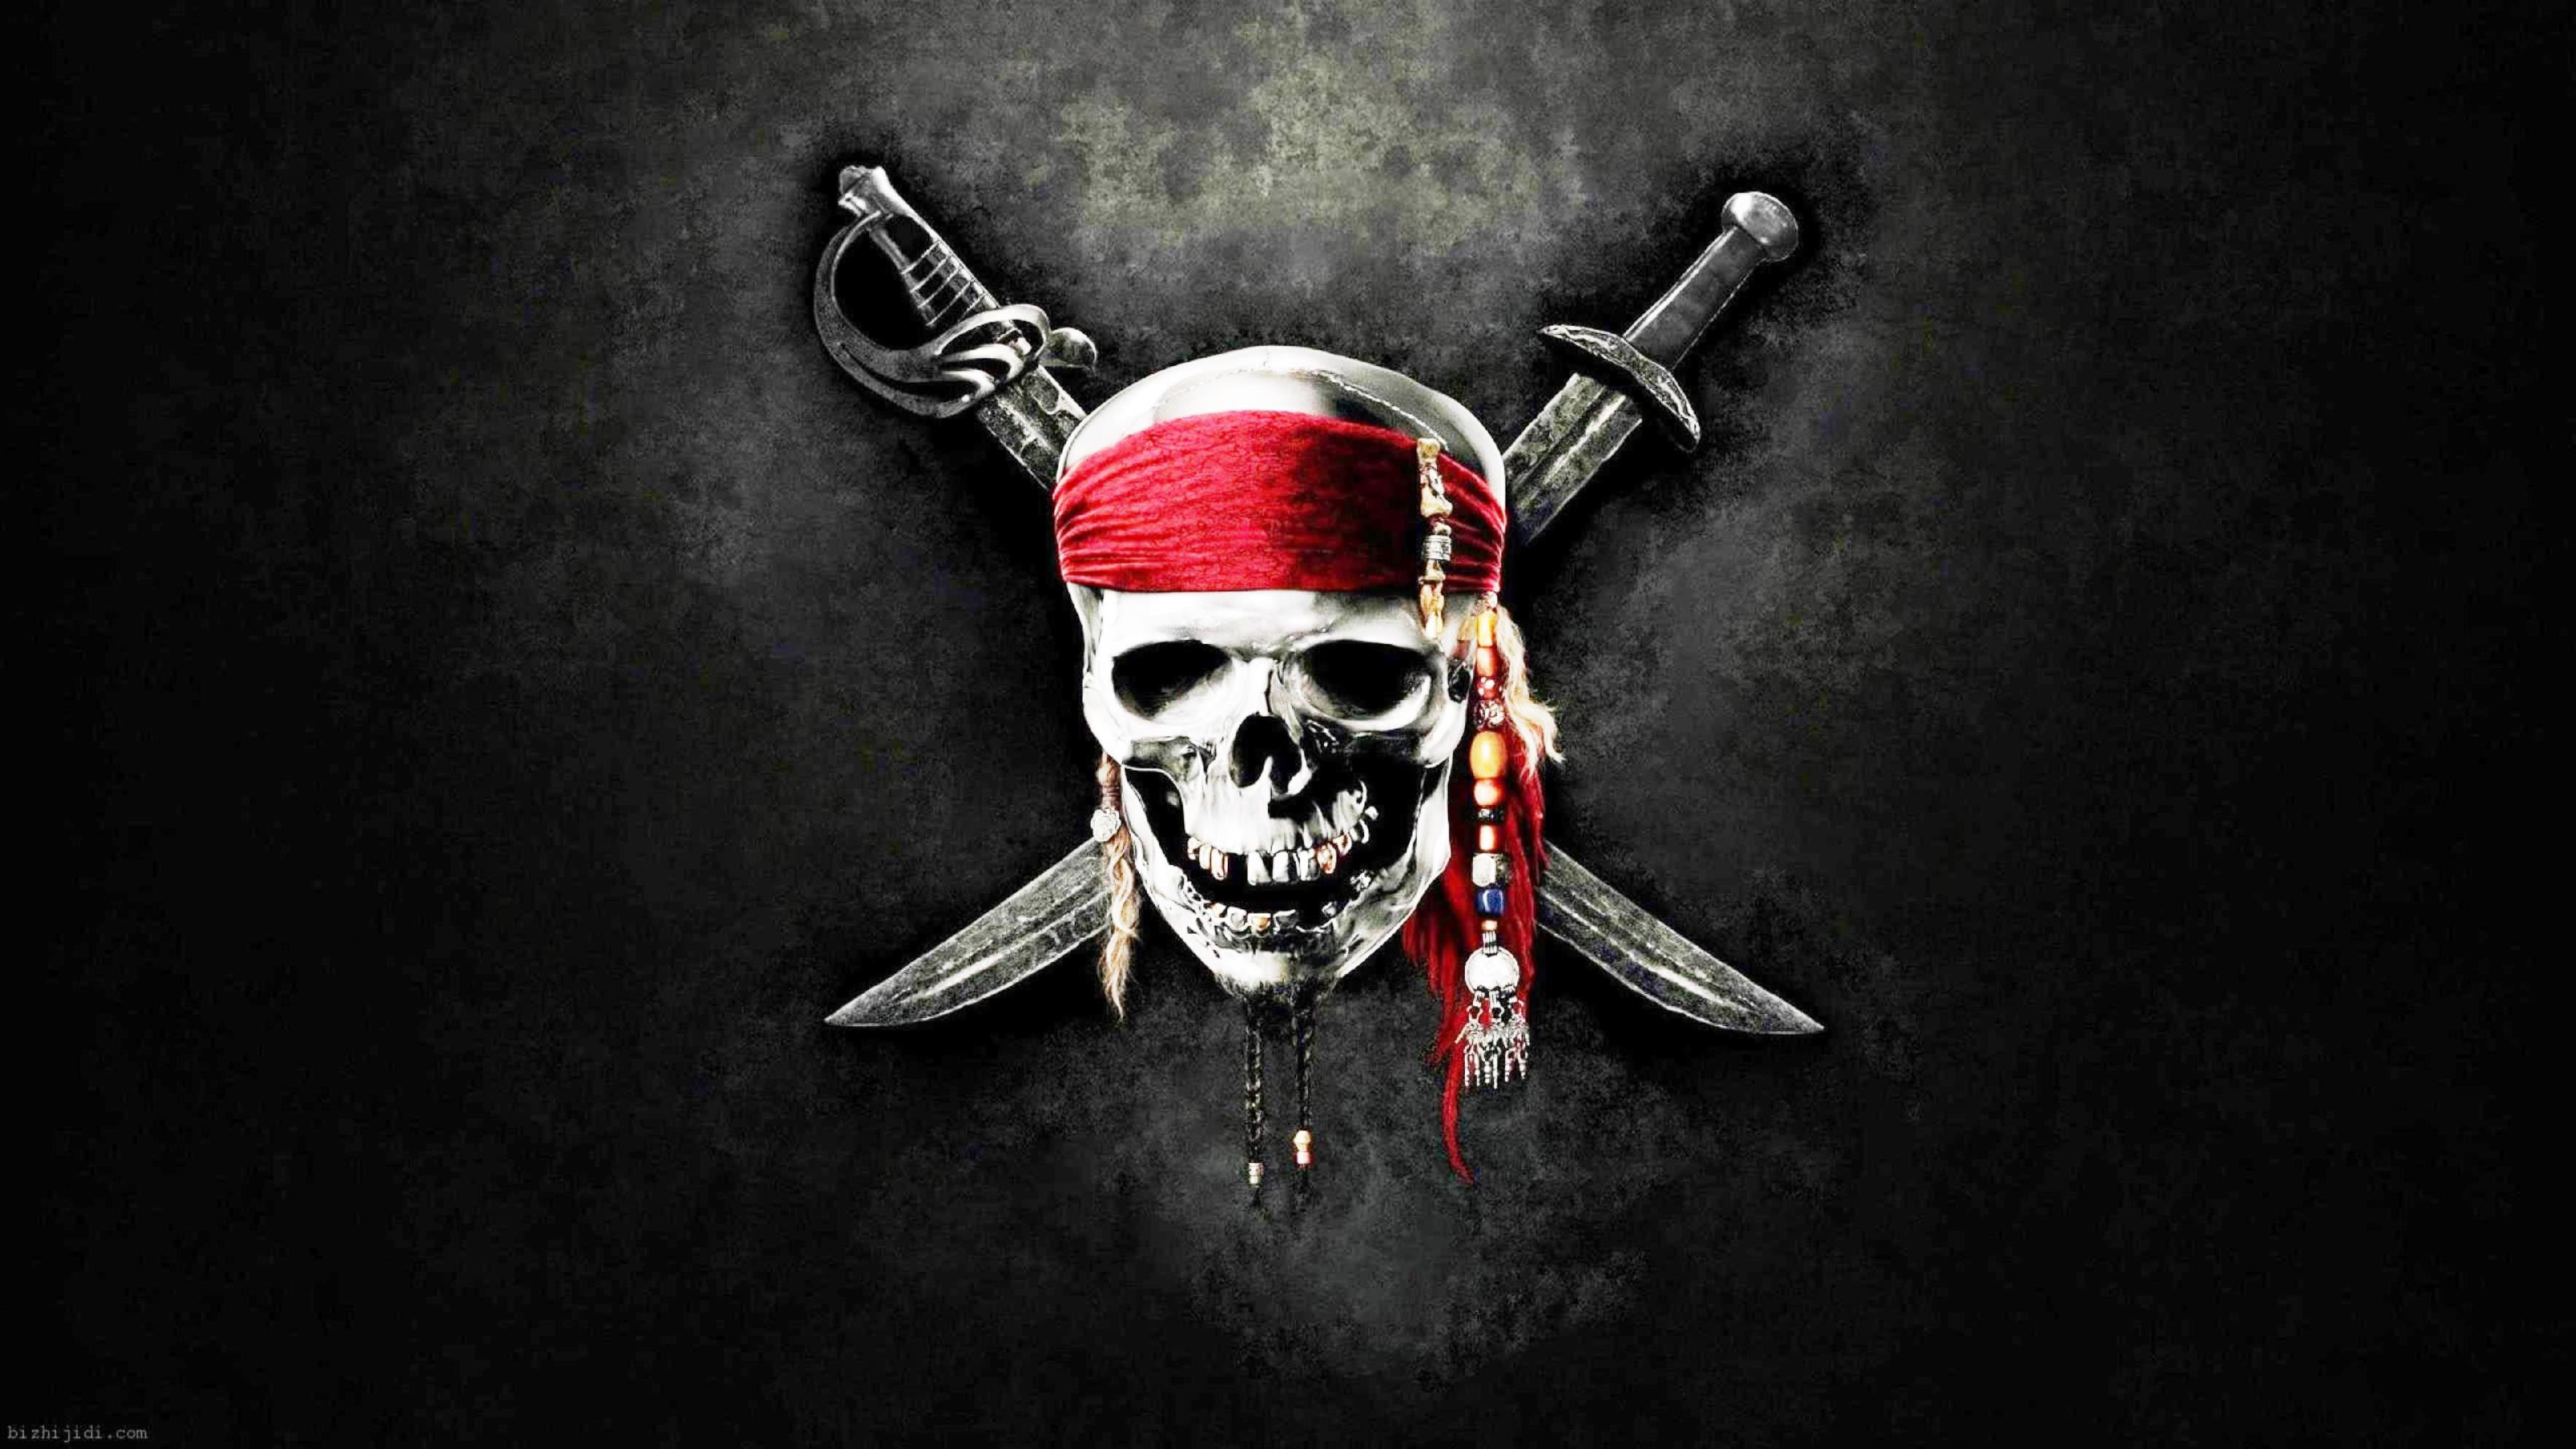 Awesome Skull Wallpapers Wallpapers Browse: Cool Skulls Wallpapers (53+ Images